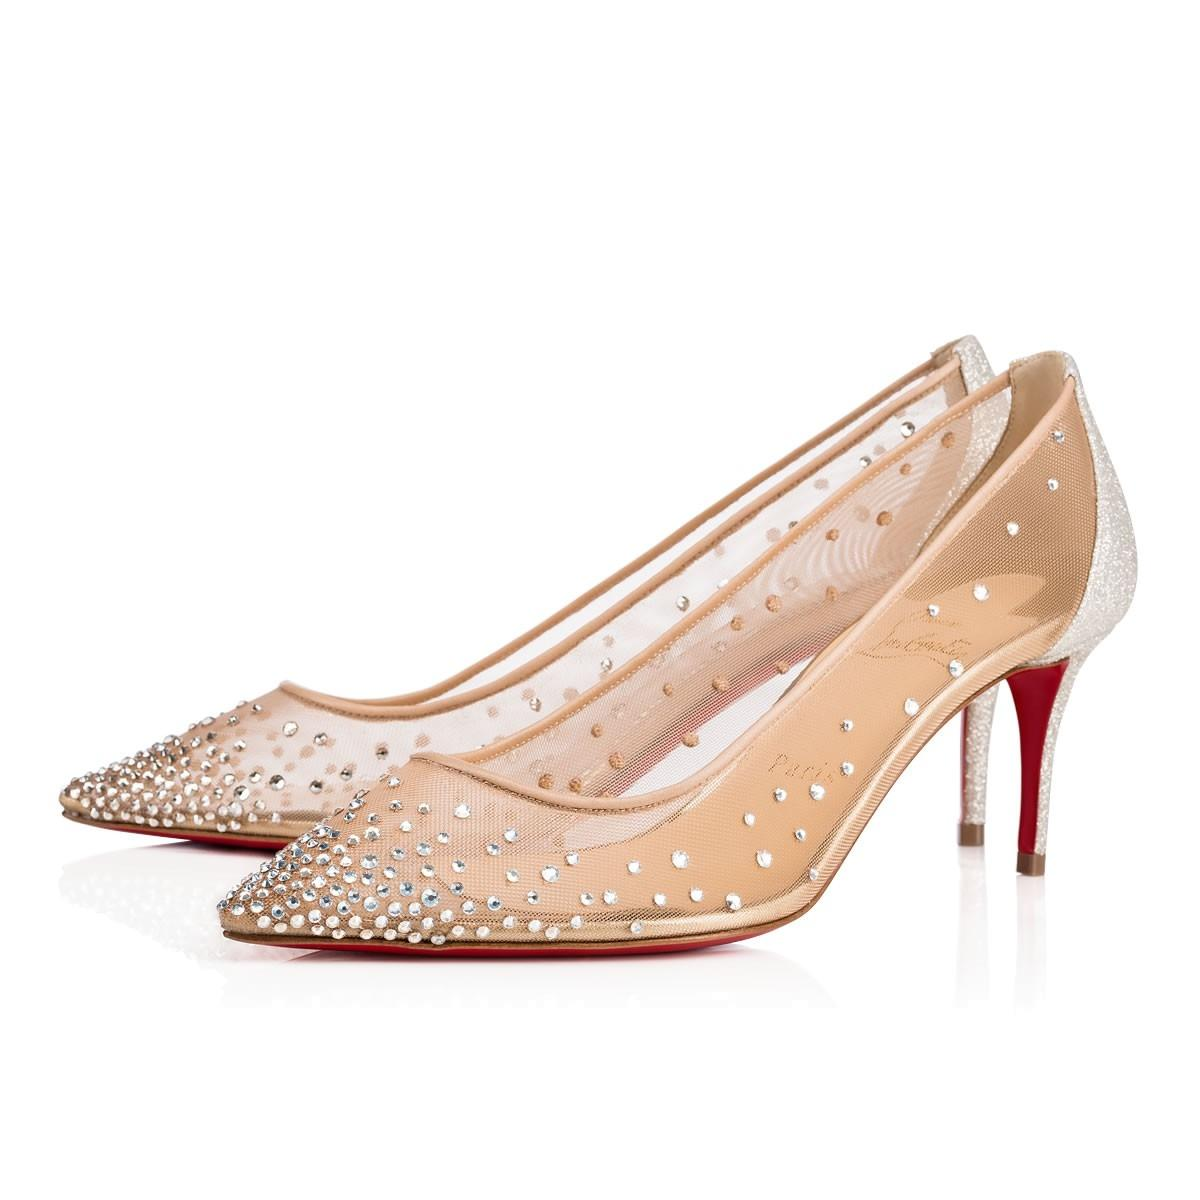 cfc321a69779 official tan christian louboutin flats shoes 84bac b6723  where can i buy christian  louboutin glitter sparkle neutral mesh with crystals pumps a7389 d47b6